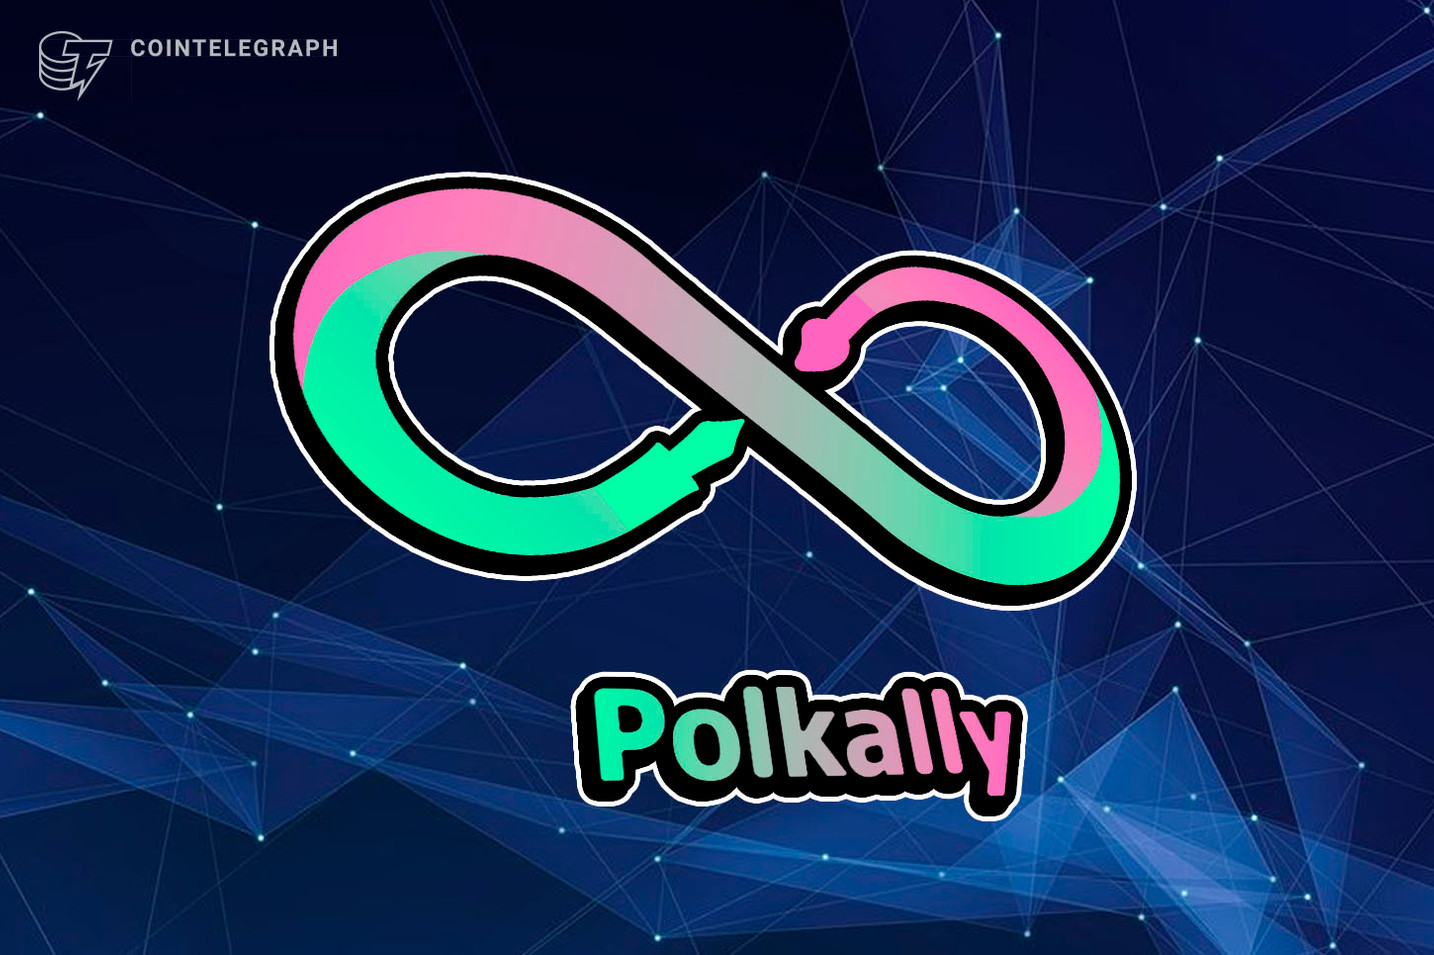 Introducing Polkally: A seamless NFT experience